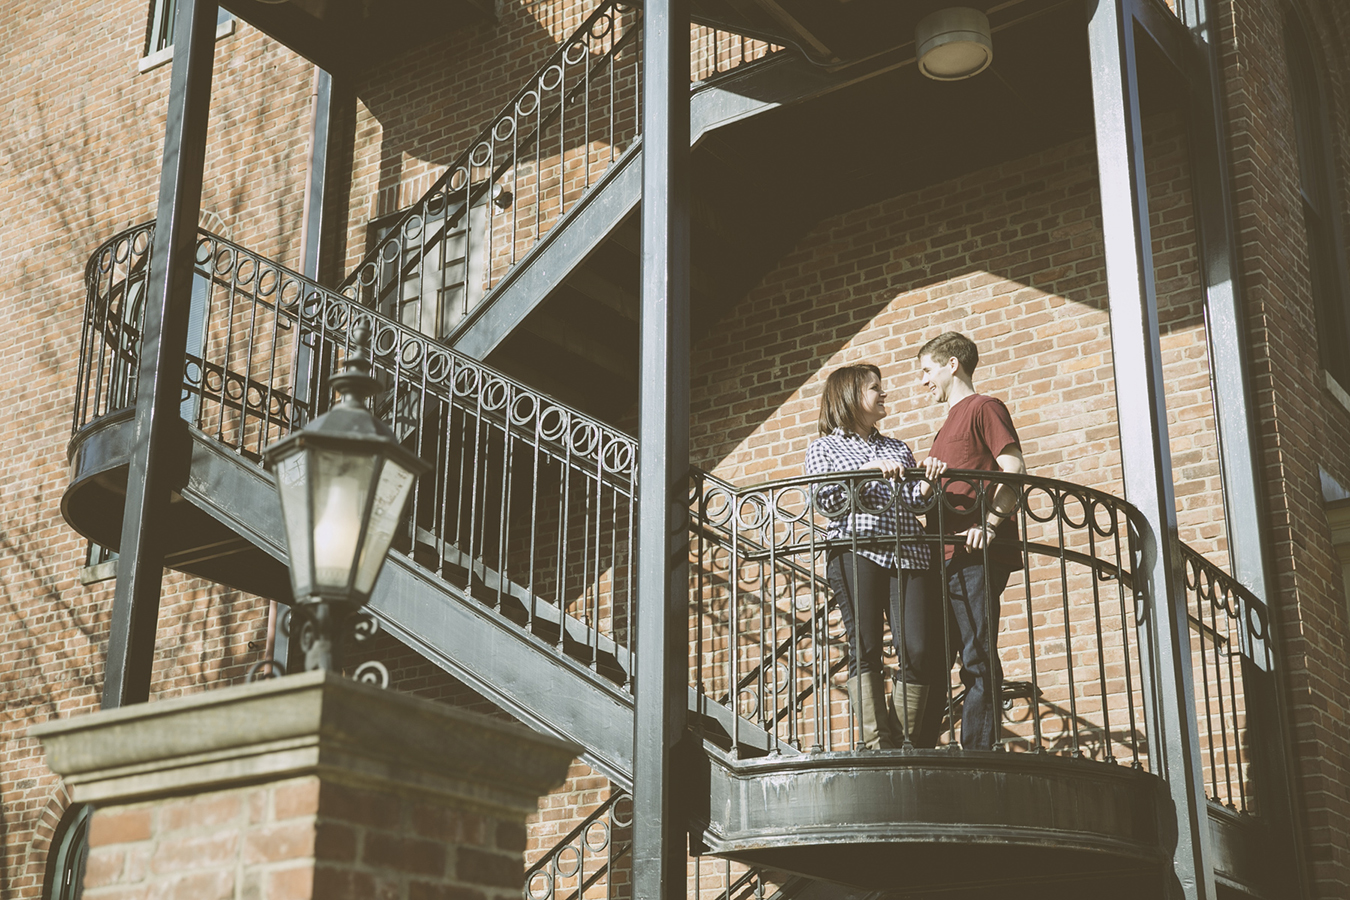 Downtown Lexington Kentucky Engagement Photography. This one in particular was done at the Opera house, the iron railing is so beautiful for photos.